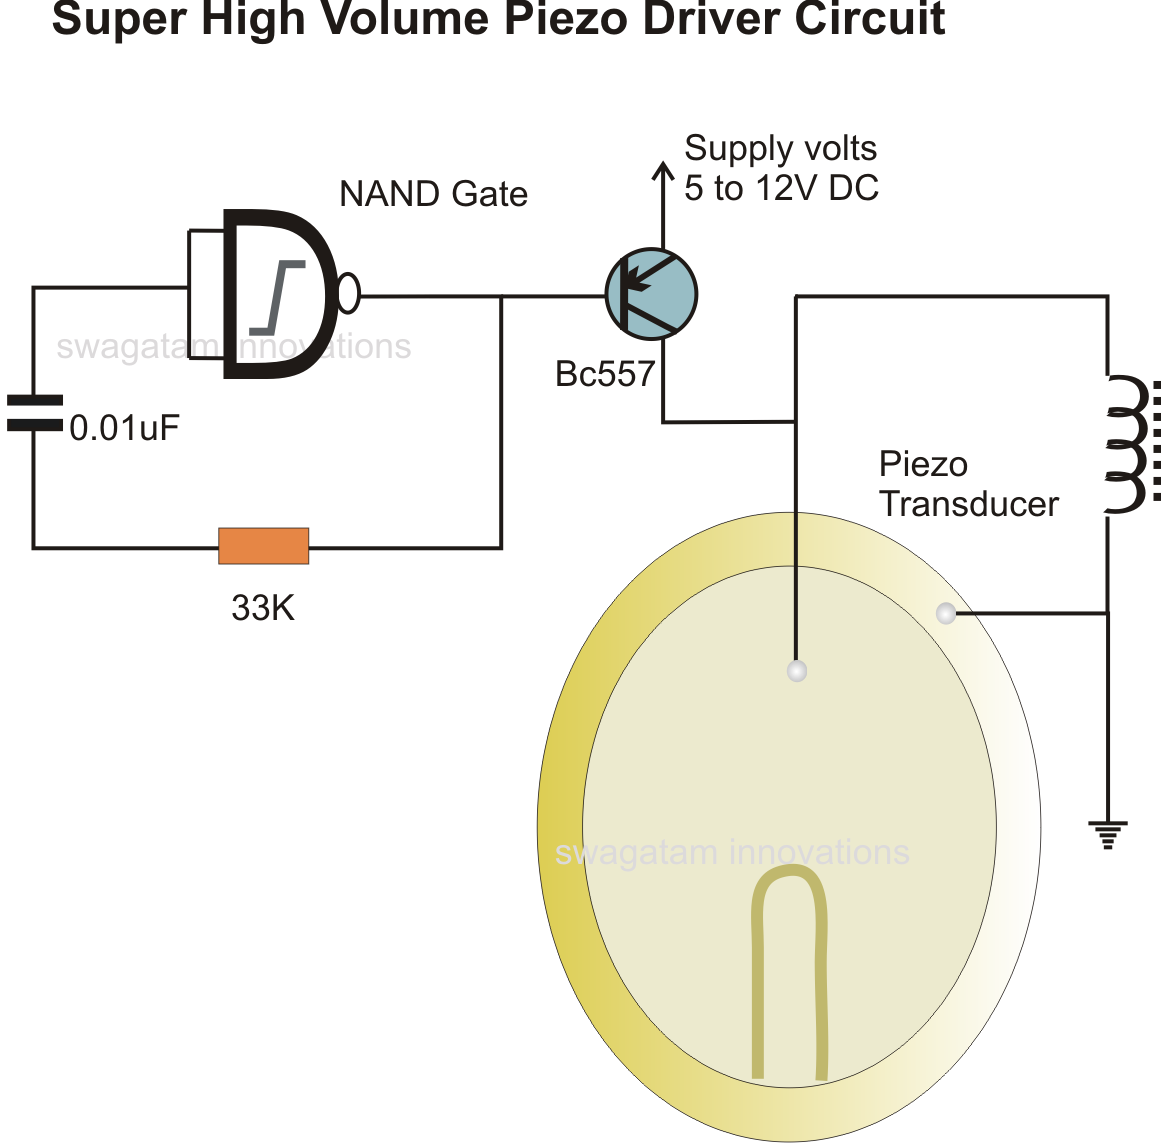 simplest piezo driver circuit explained electronic circuit projects the junction of the 0 01uf capacitor and the 33 k resistor needs to be connected to ground which is not indicated in the diagram